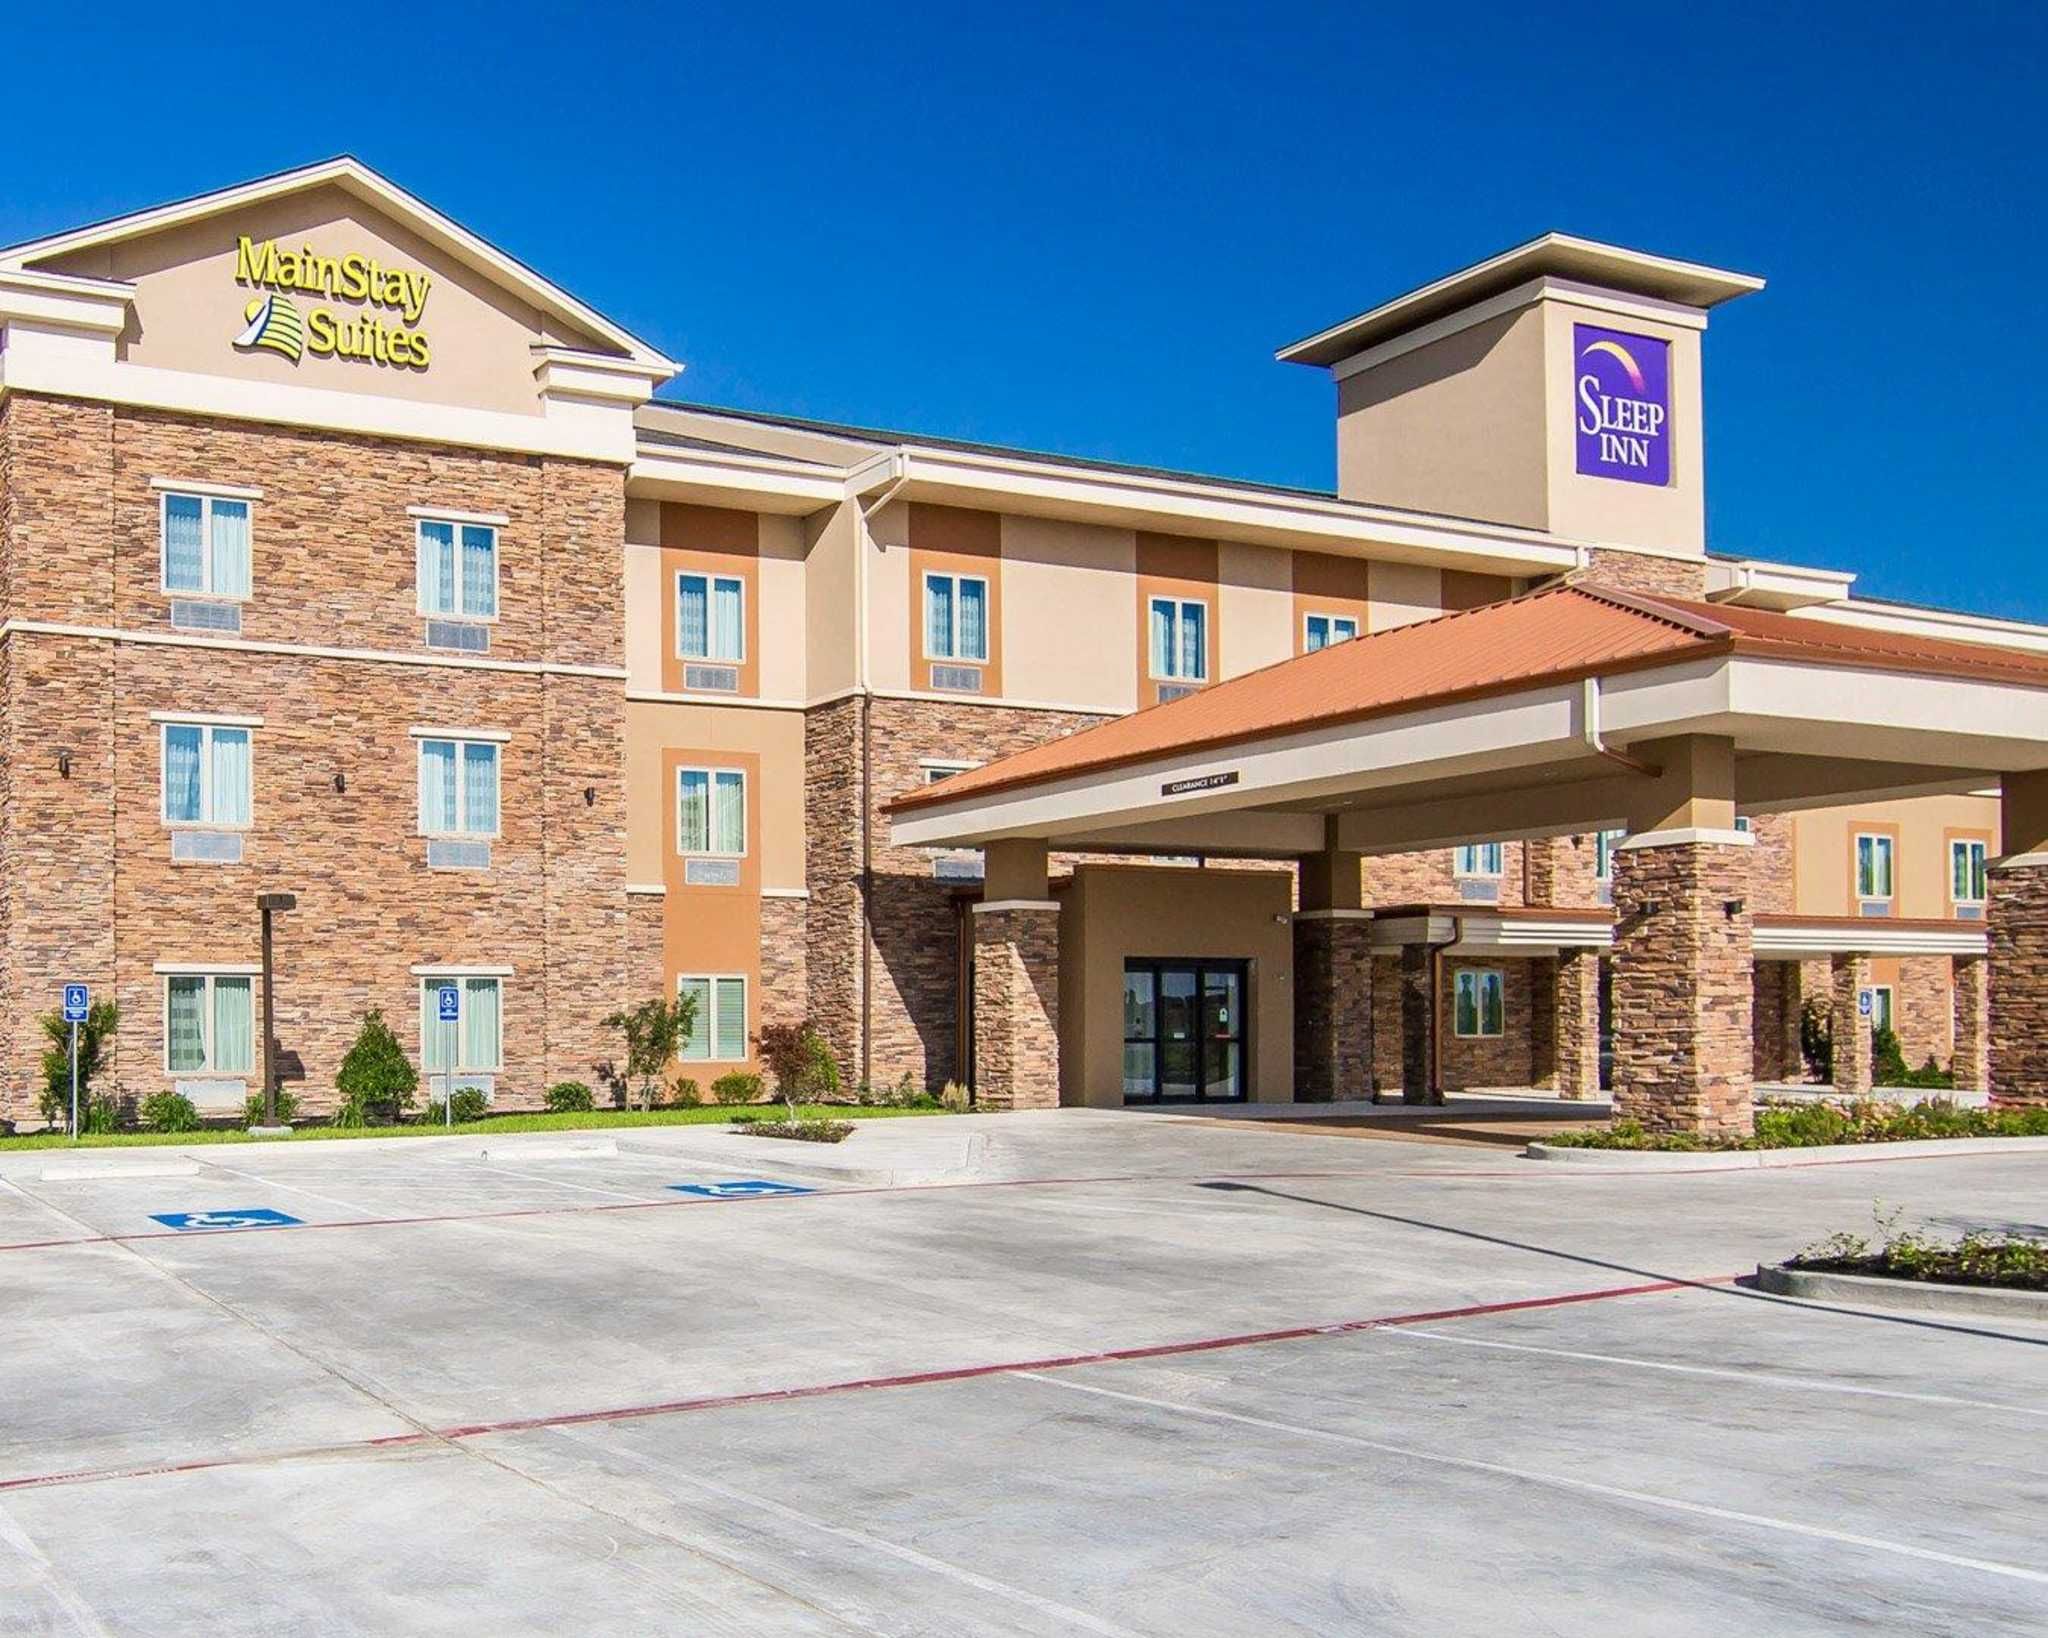 Sleep inn coupons near me in lufkin 8coupons for Hotels 8 near me